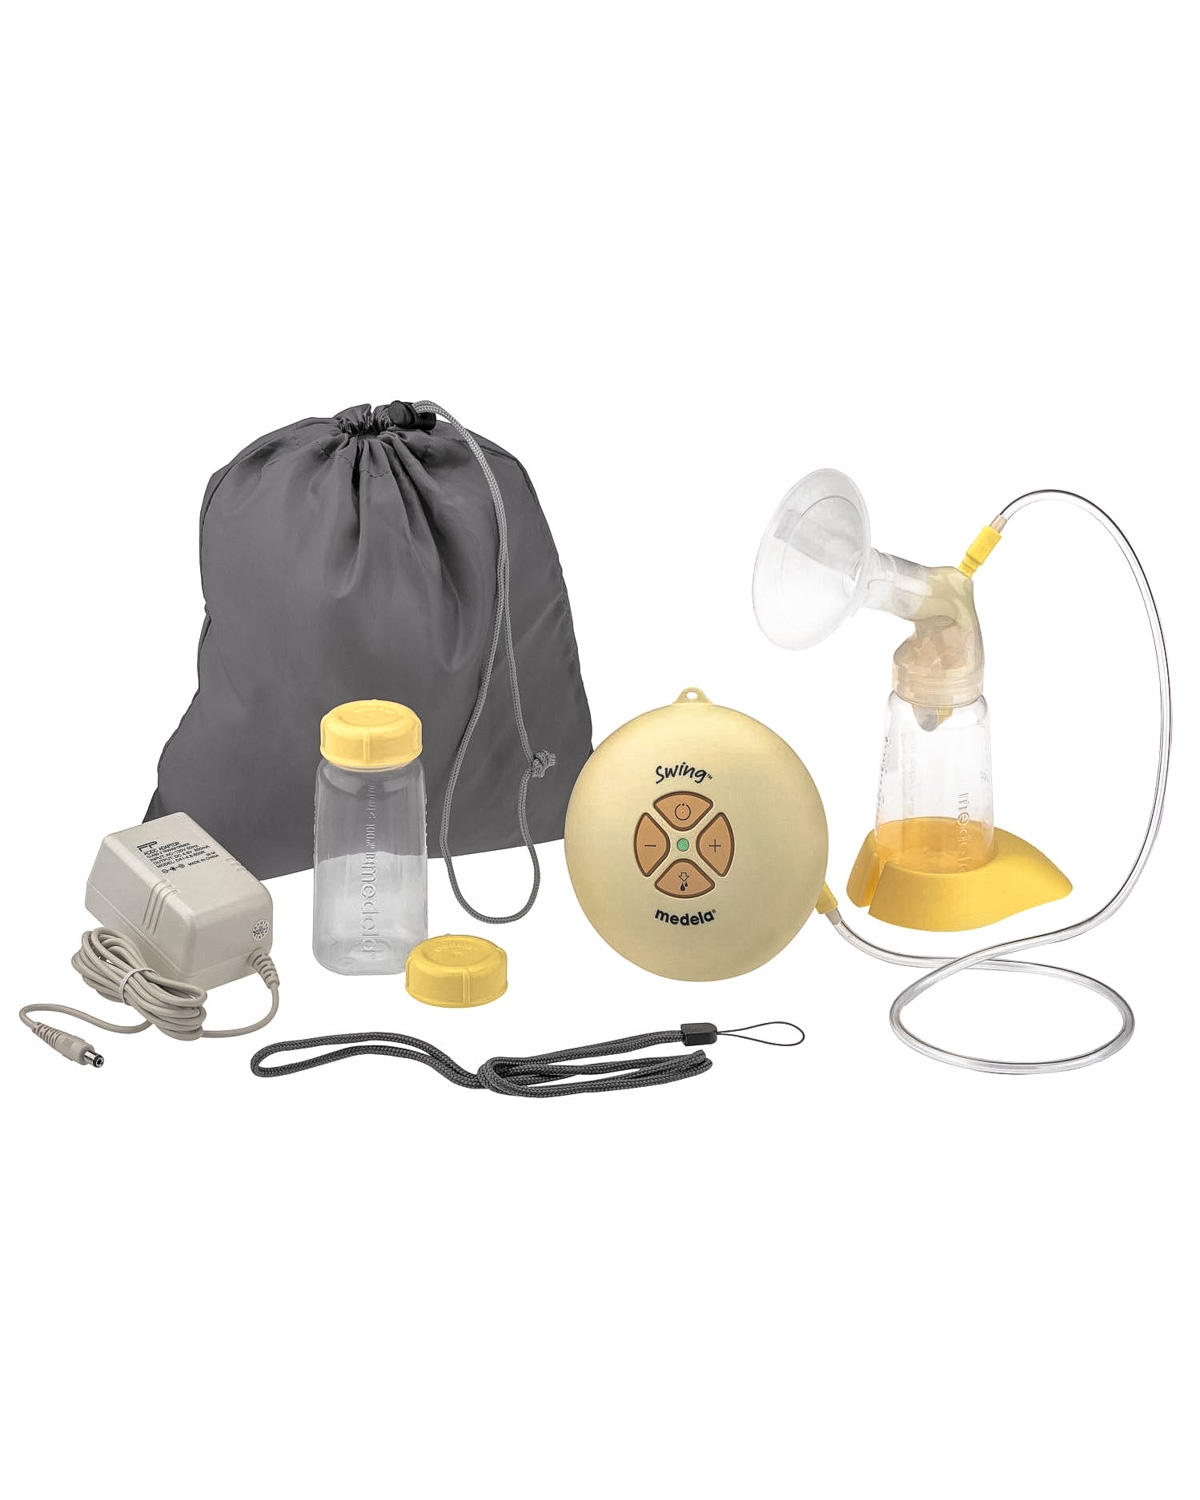 Get free electric breast pump through insurance